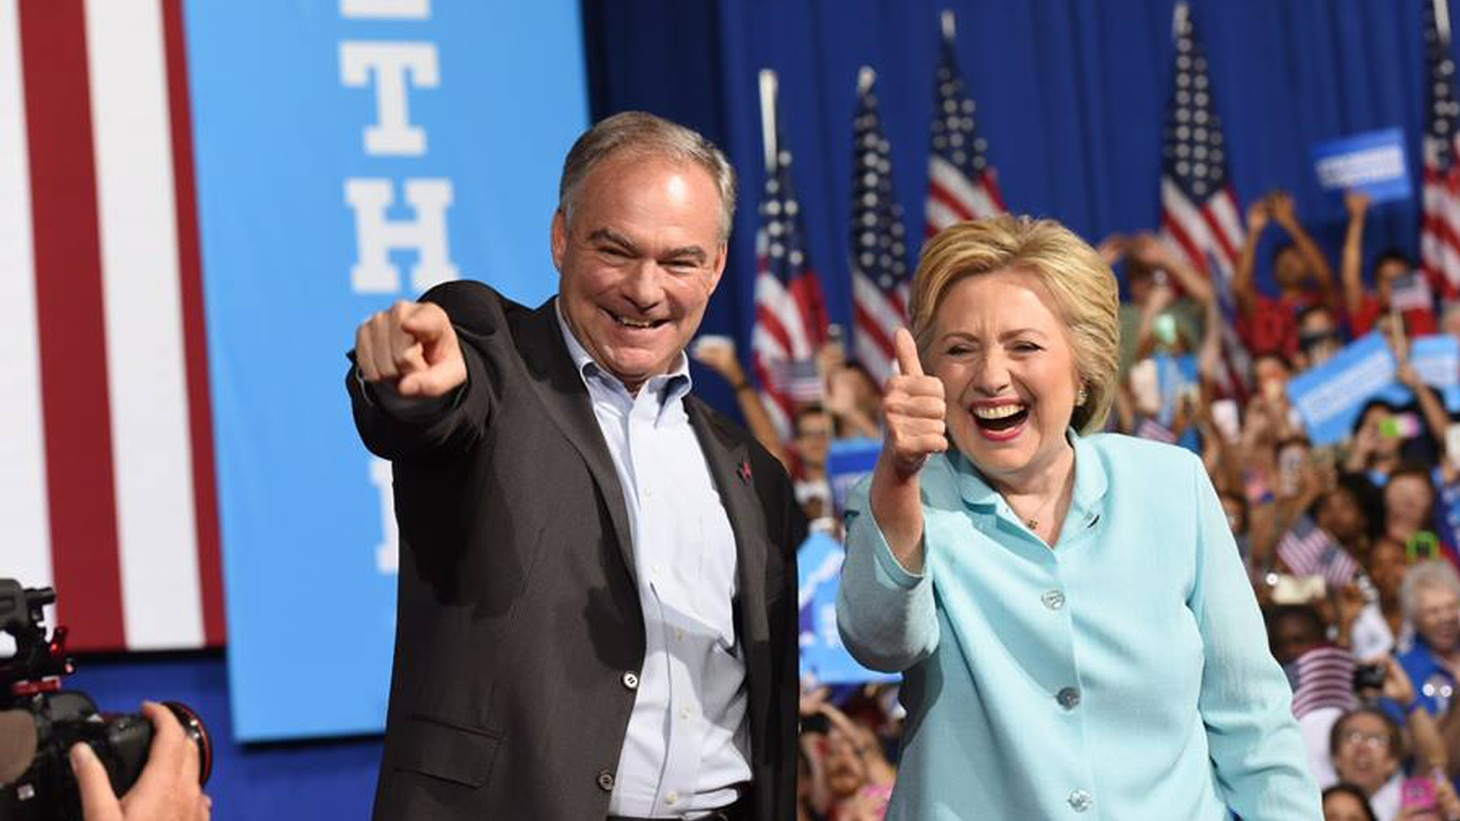 Tim Kaine is the senator from Virginia, and a former governor from that state. He's seen as a centrist, but at heart is a died-in-the-wool liberal. That's from last week's profile of the Democratic presidential nominee in the  New York Times . Sheryl Gay Stolberg is the author.